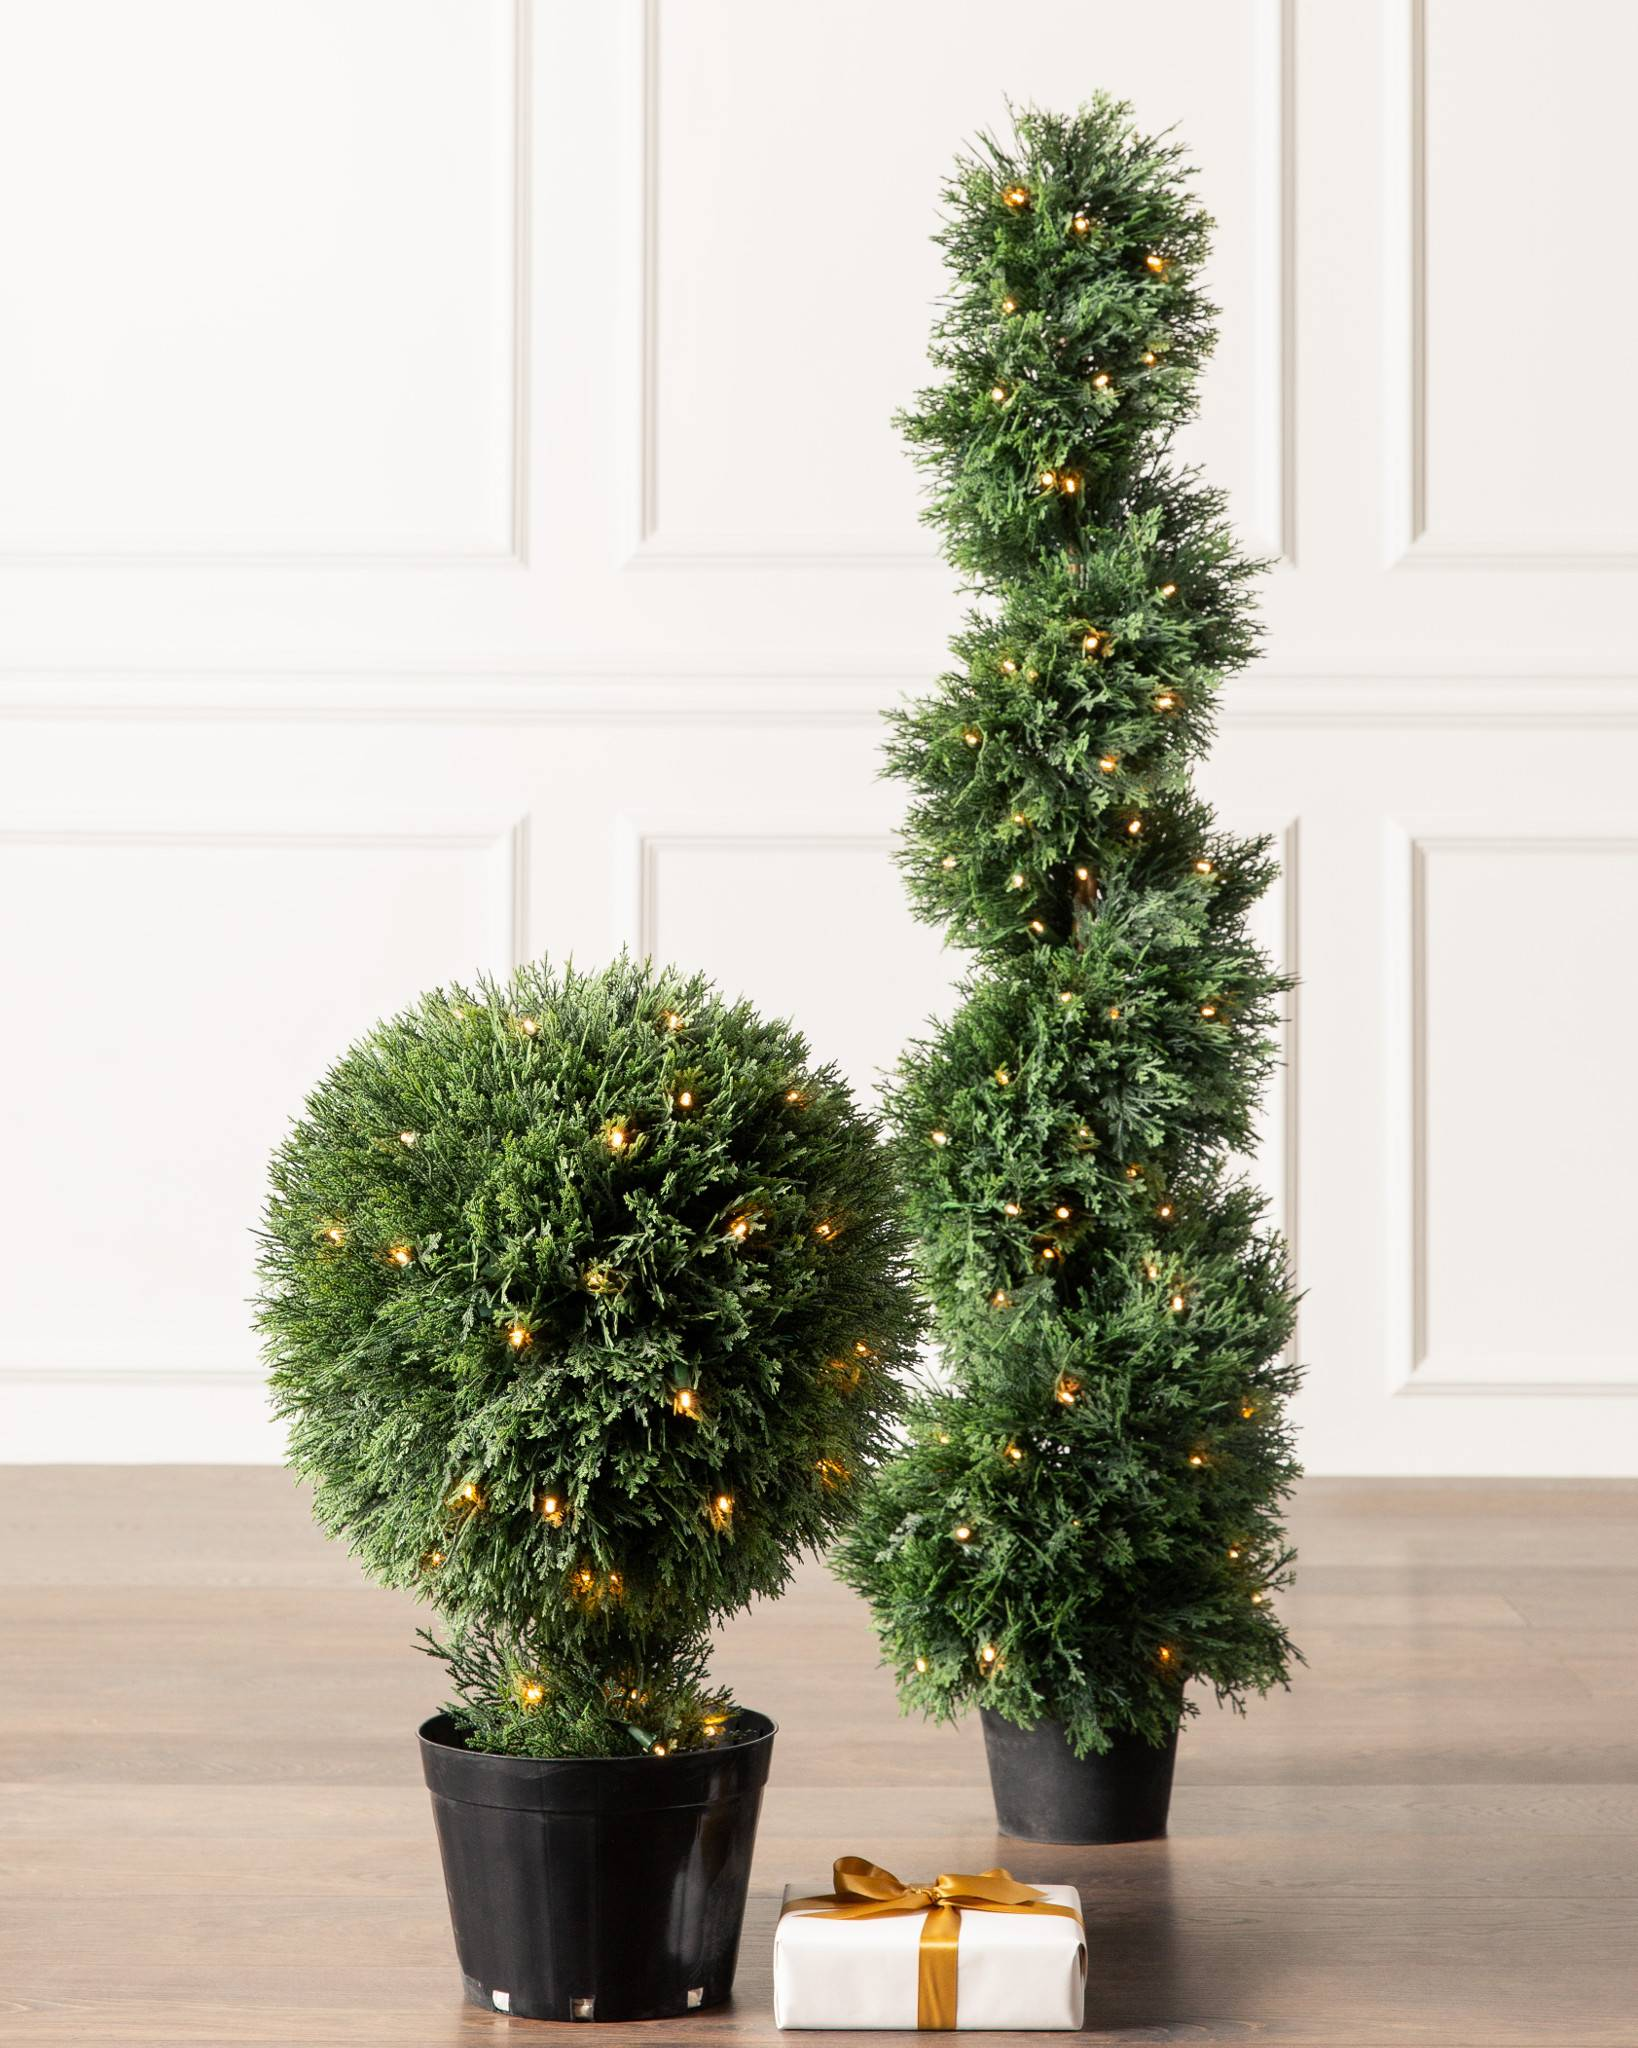 Outdoor LED Cypress Topiary